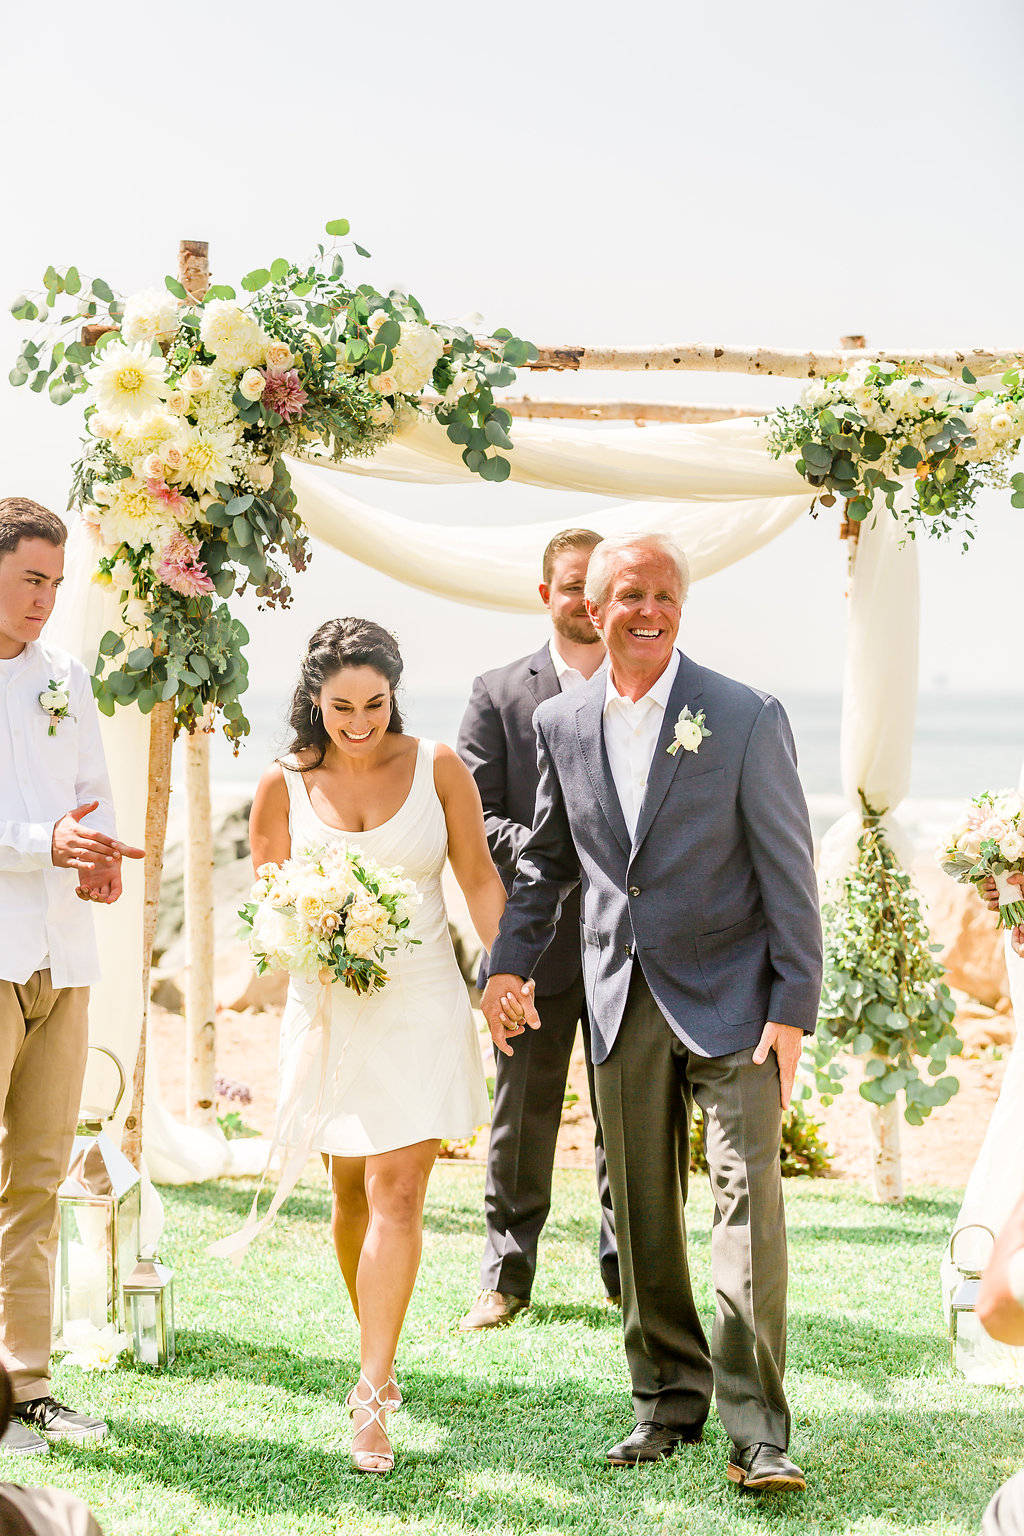 santa-barbara-elopement-wedding-planner-coordinator-day-of-elope-beach-beachfront-private-ocean-view-garden (1).jpg